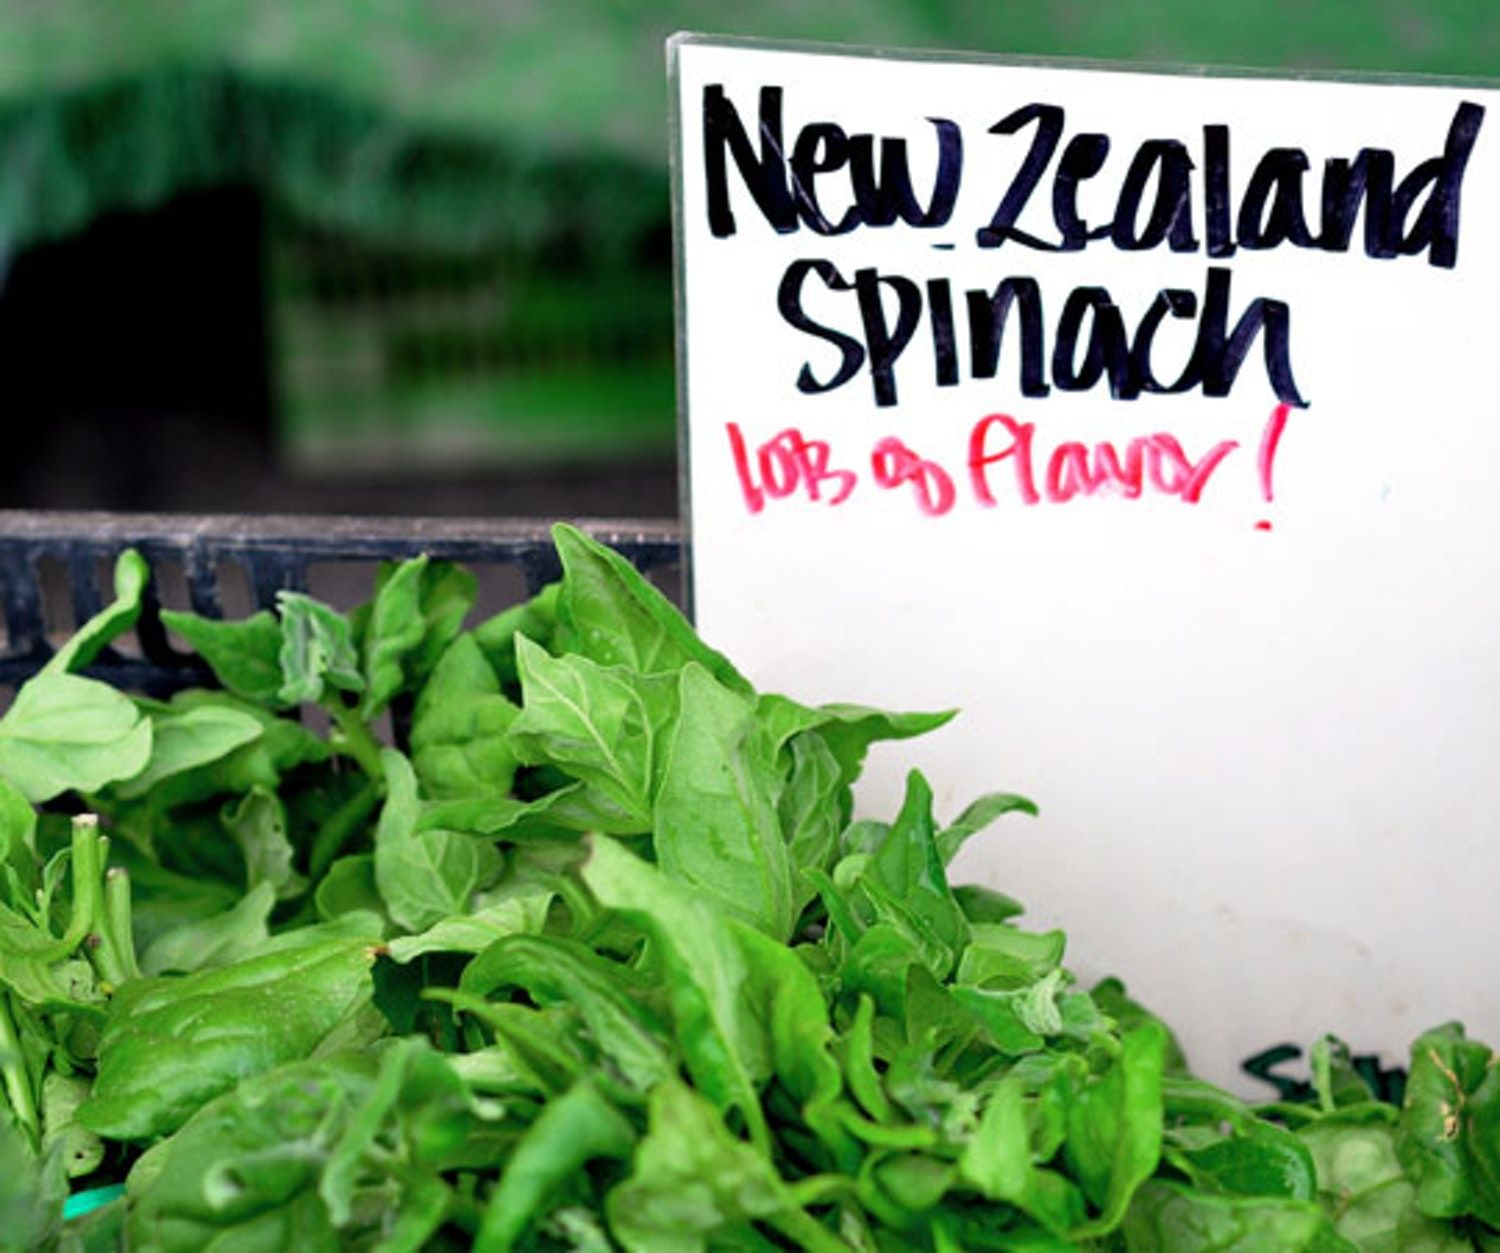 Farmers' Market Find New Zealand Spinach New zealand